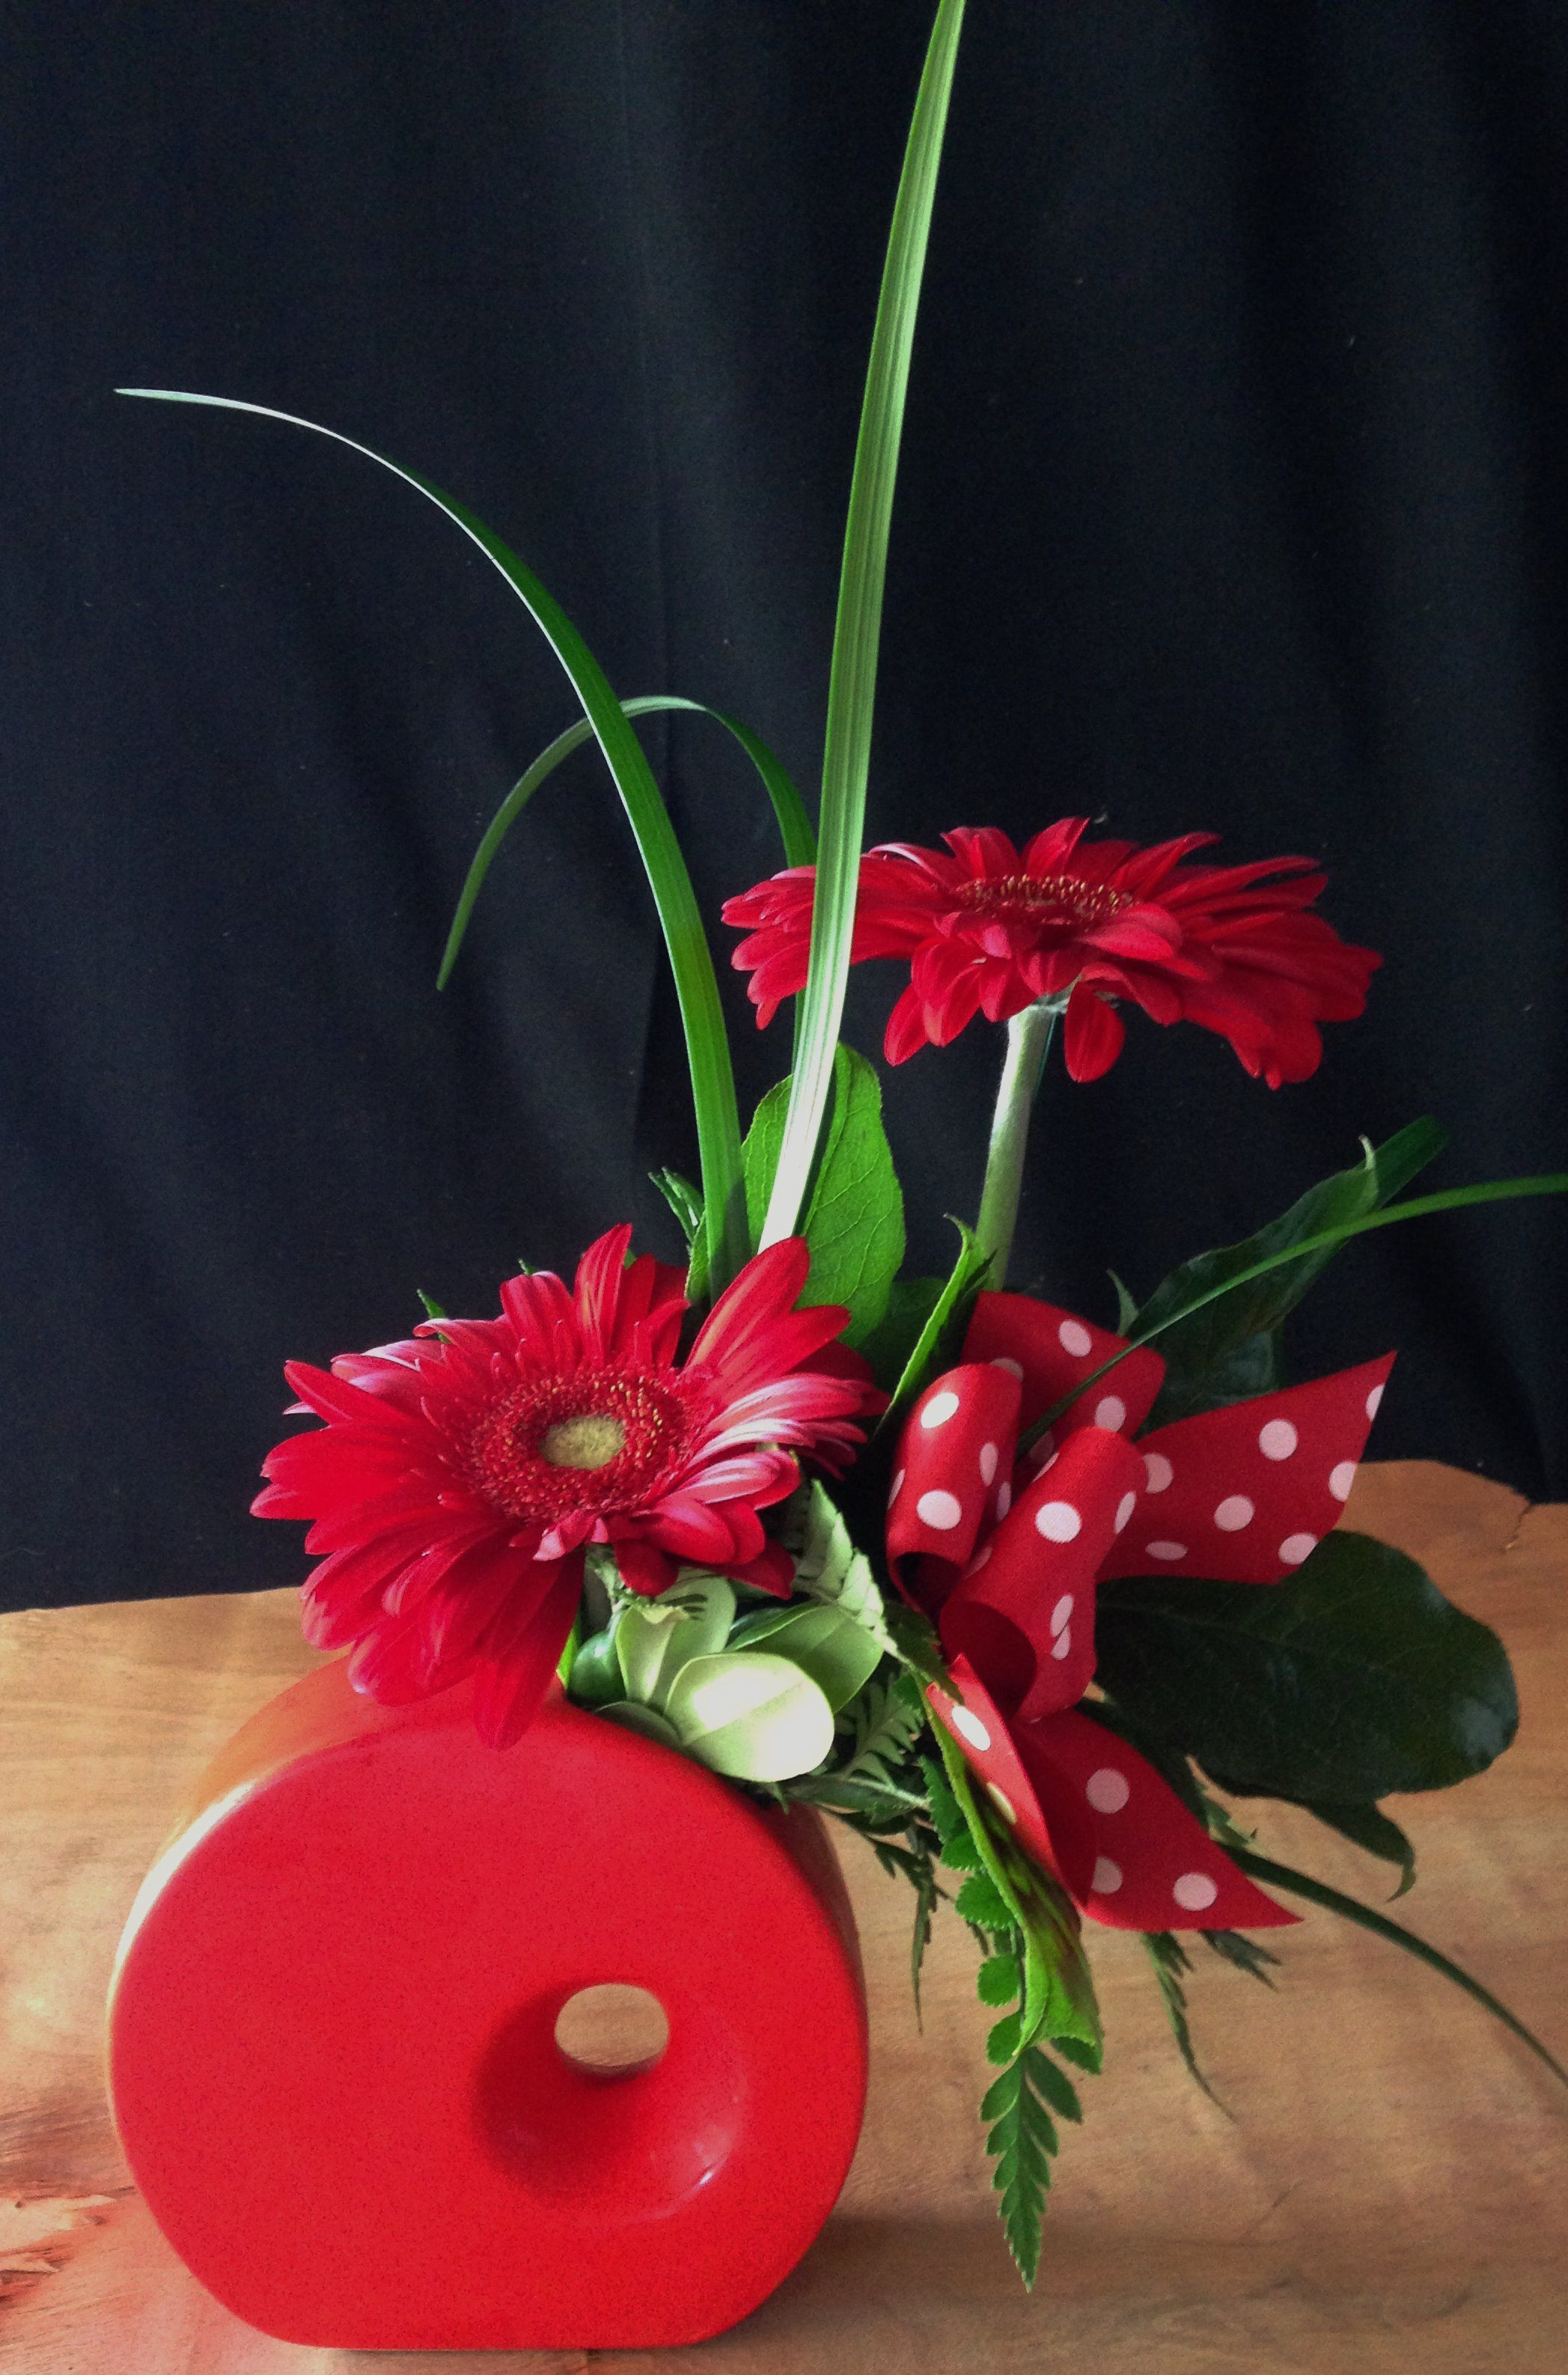 red pottery vase of red ceramic vase image funky red ceramic vase filled with red regarding funky red ceramic vase filled with red gerbera daisies and a polka